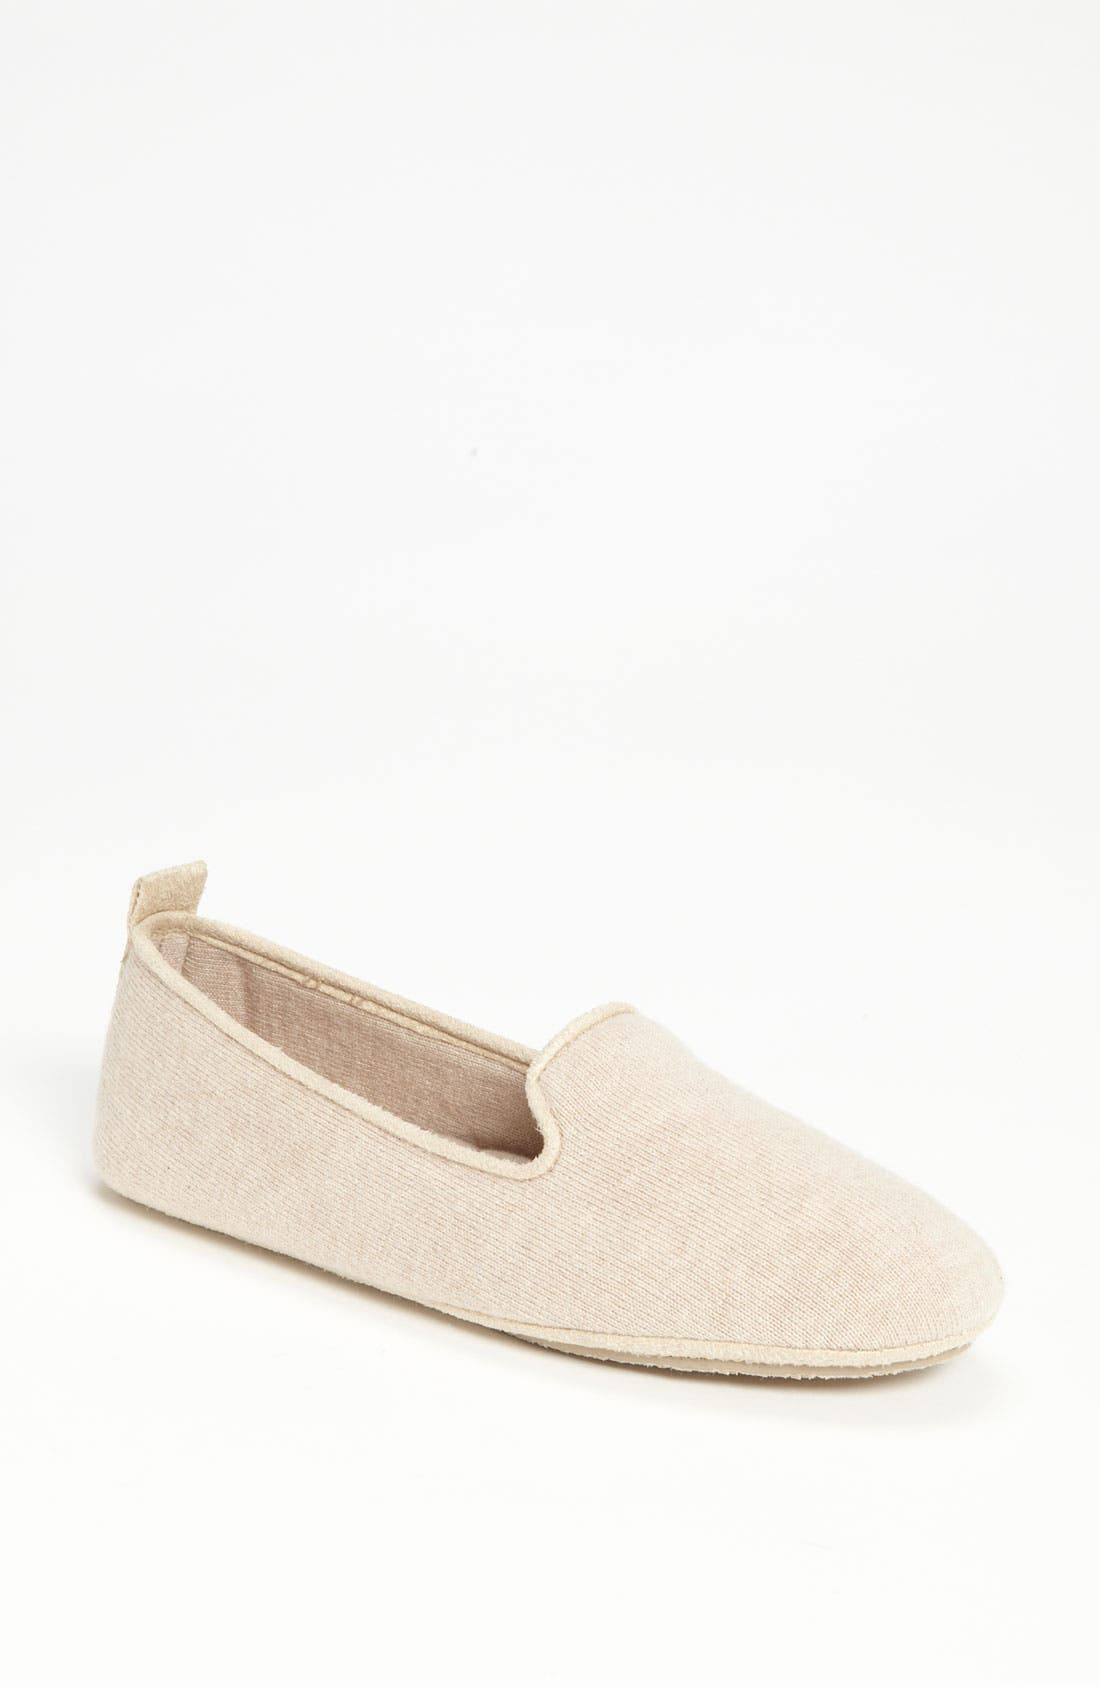 Alternate Image 1 Selected - Acorn Cashmere Ballerina Slipper